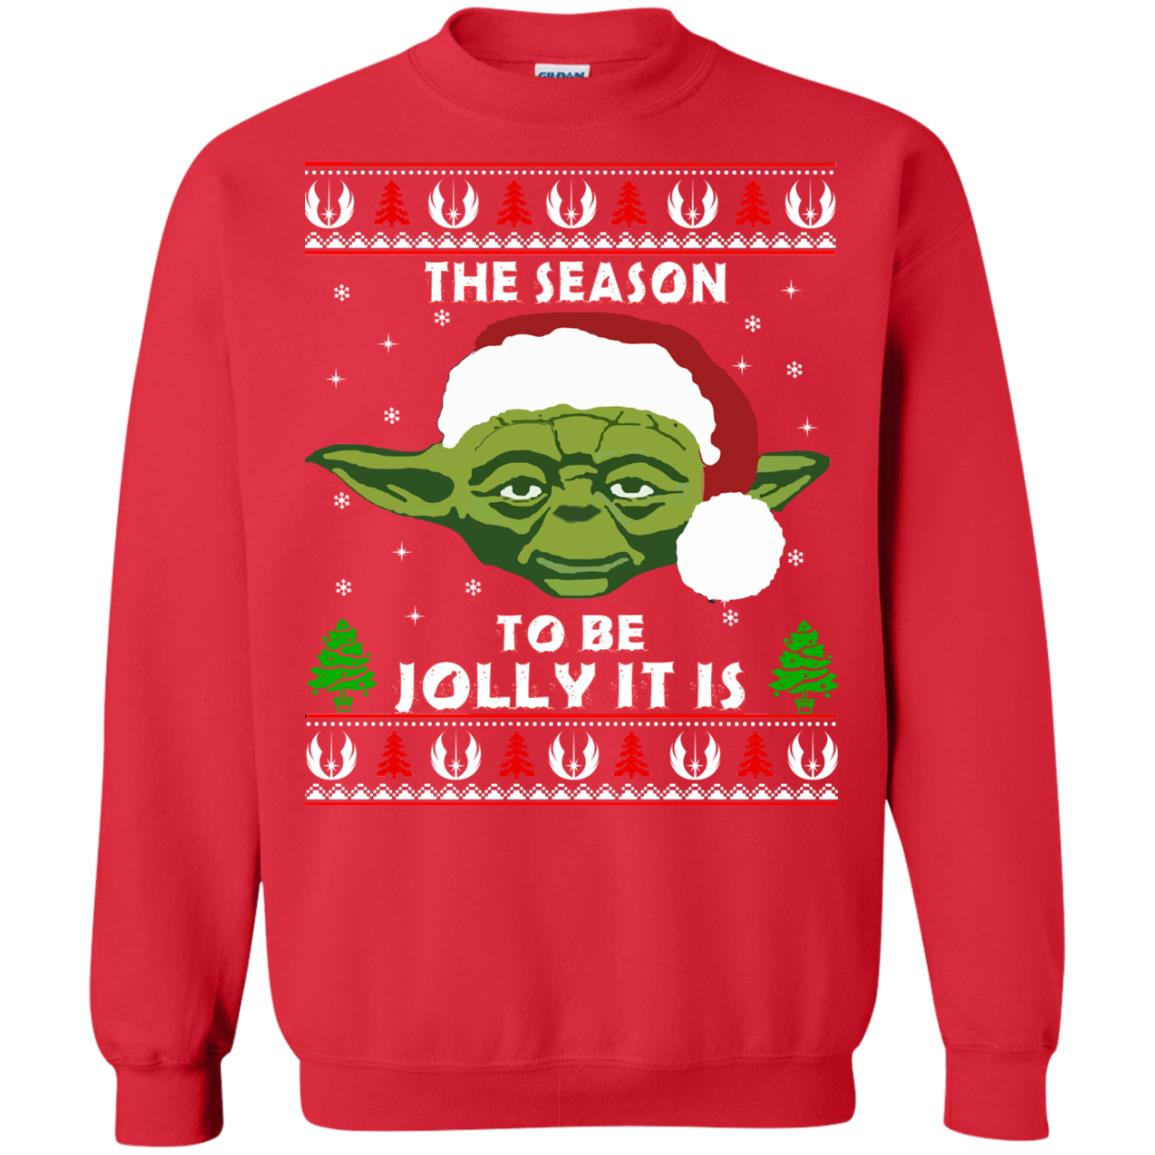 image 1706 - Star Wars Yoda: Tis the season to be jolly it is Christmas sweater, hoodie